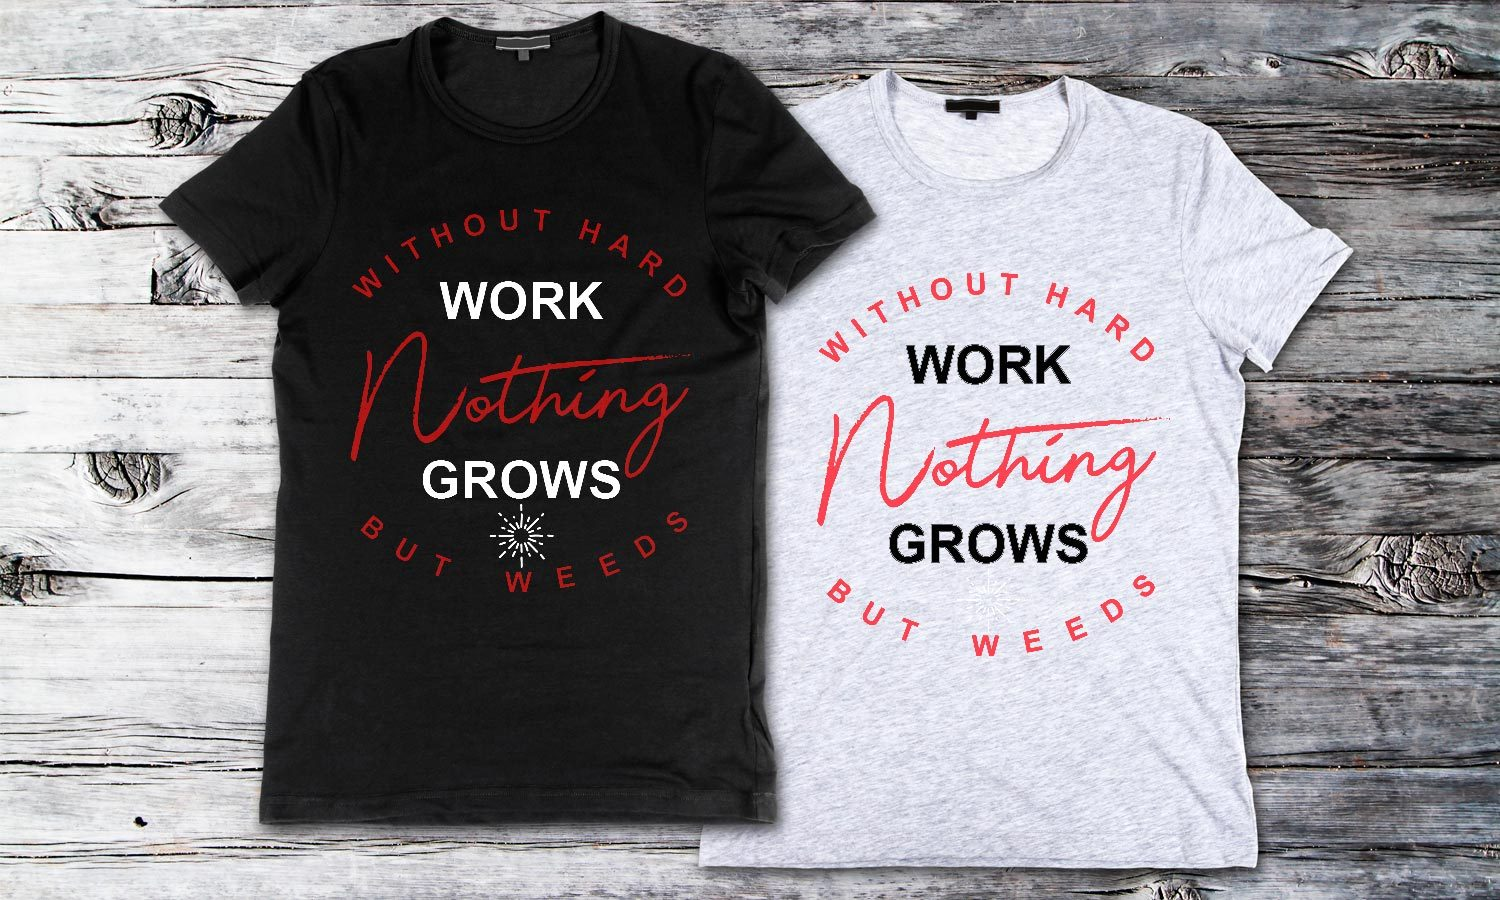 Hard Work - Printed T-Shirt for Men, Women and Kids - TS206